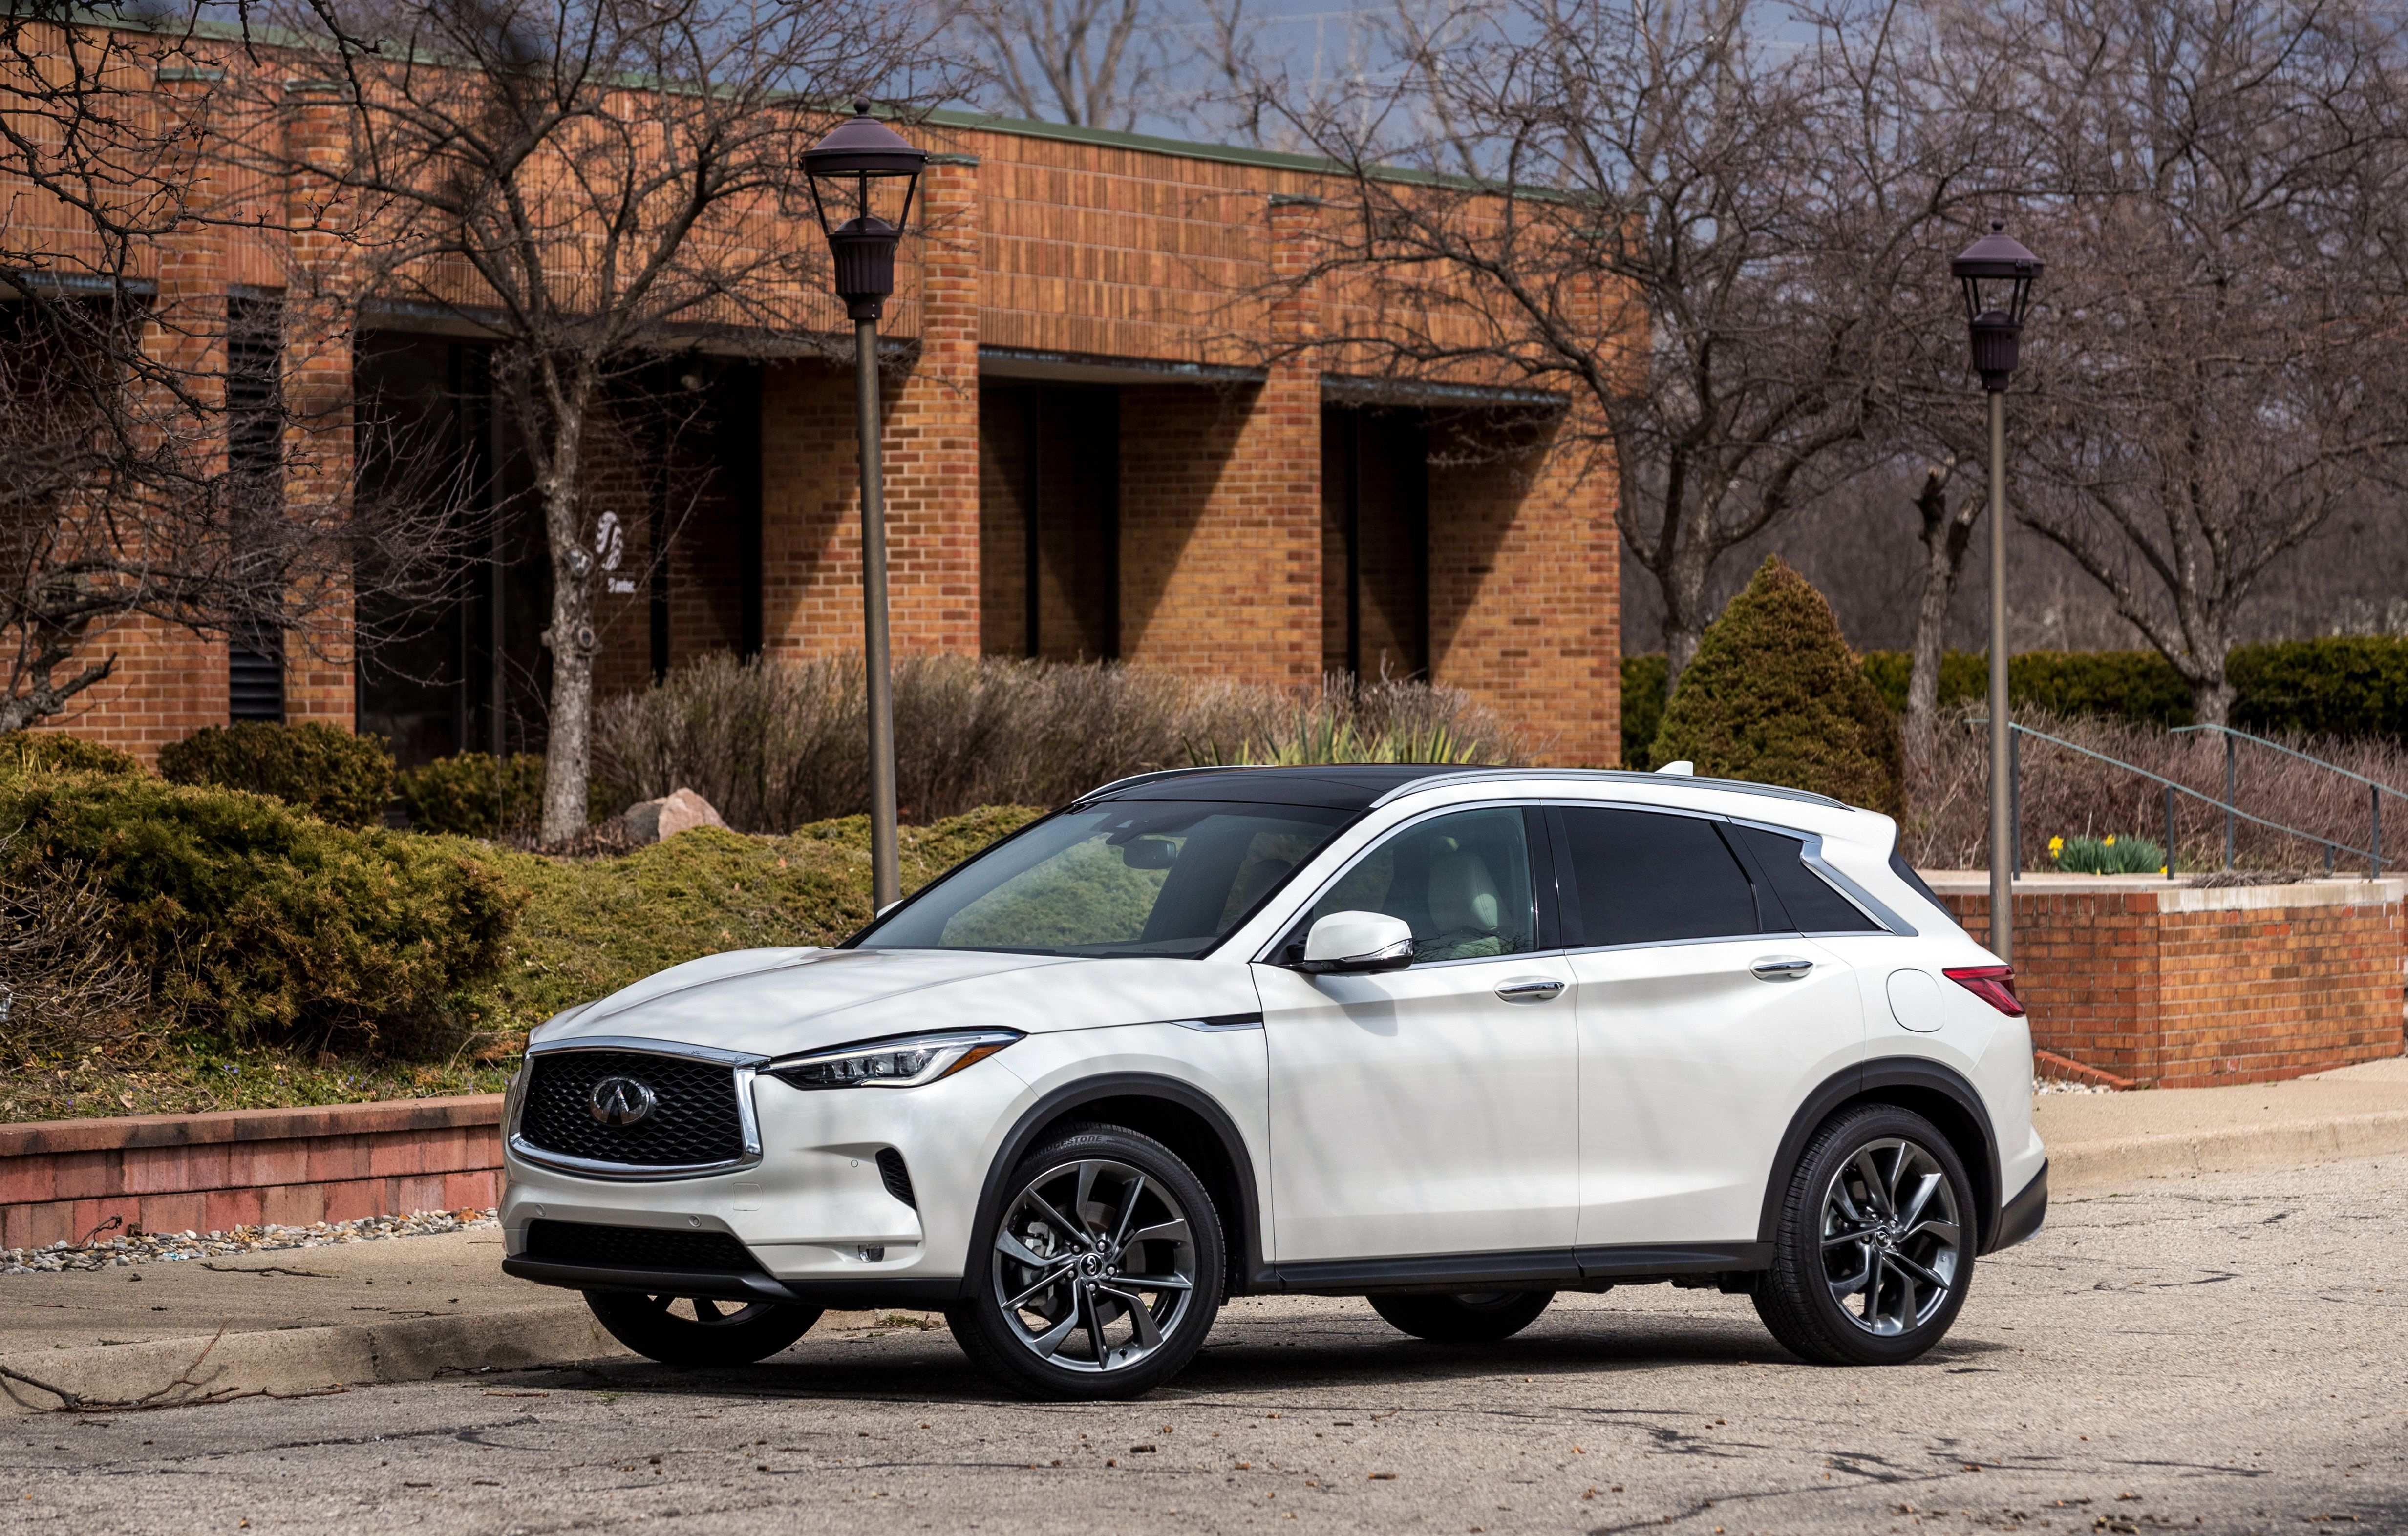 51 Gallery of 2019 Infiniti Qx50 Wiki Rumors for 2019 Infiniti Qx50 Wiki